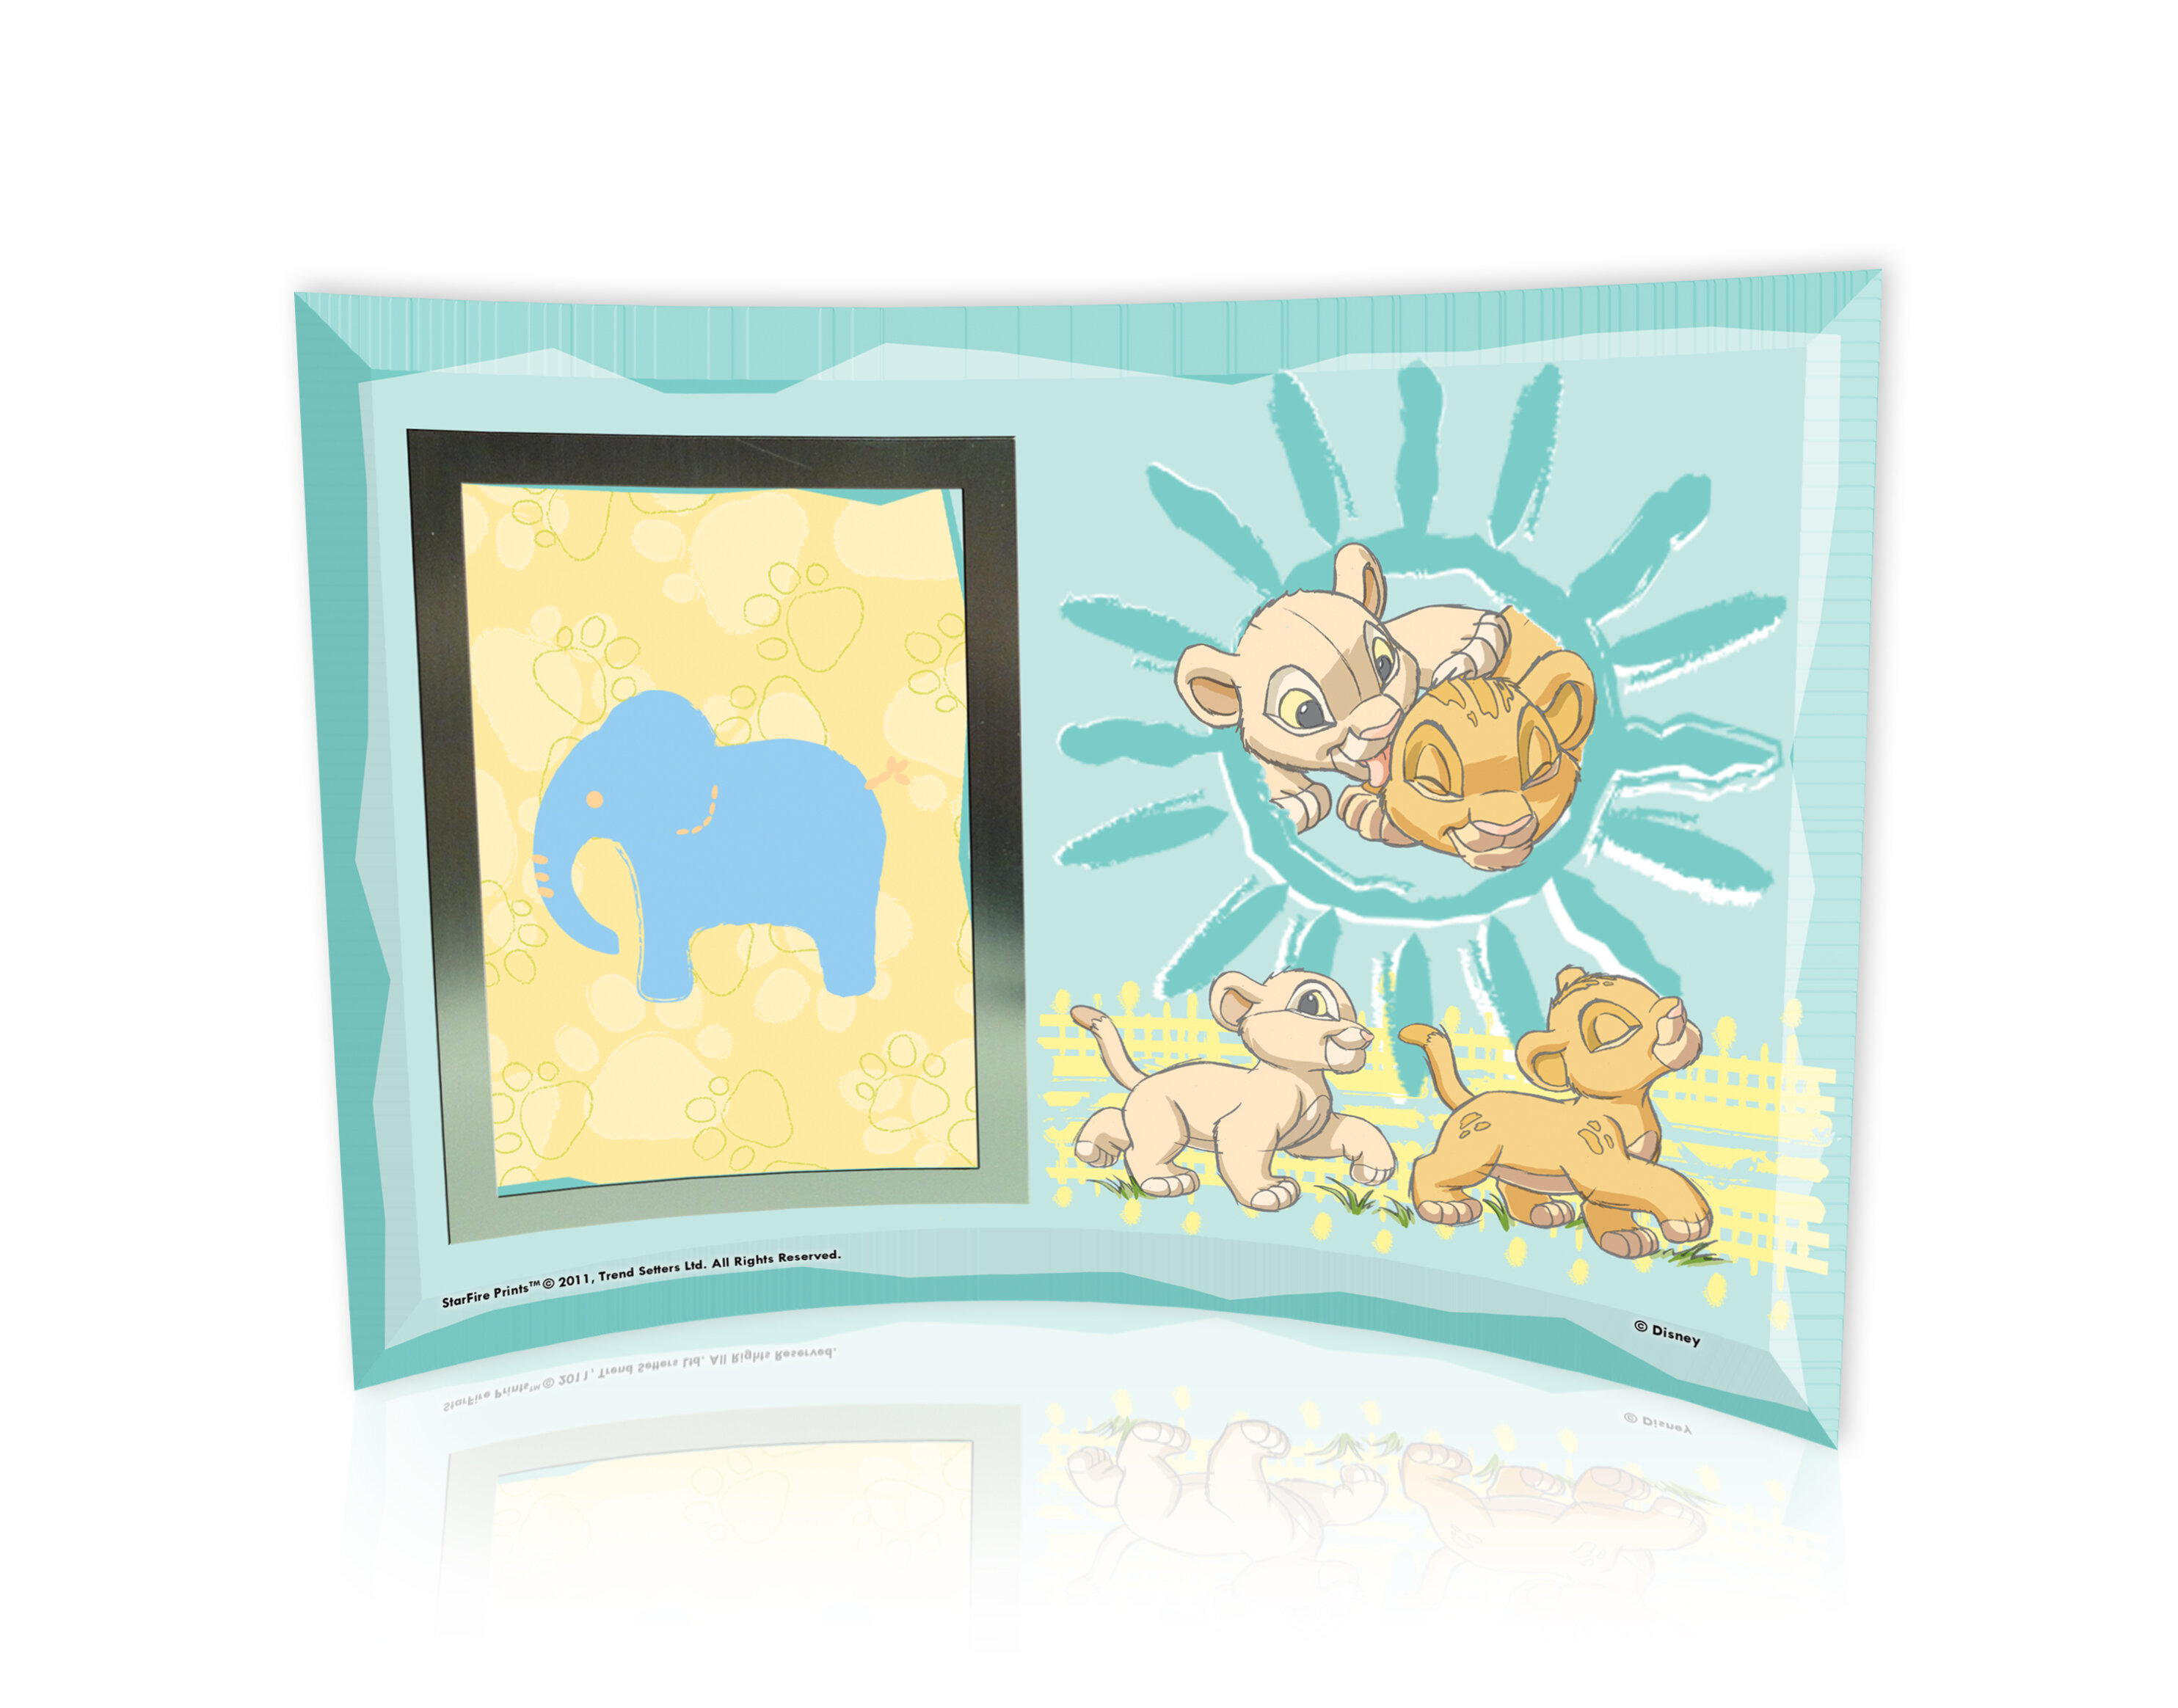 Trend Setters Lion King (Best Friends) Curved Glass Print with Photo ...